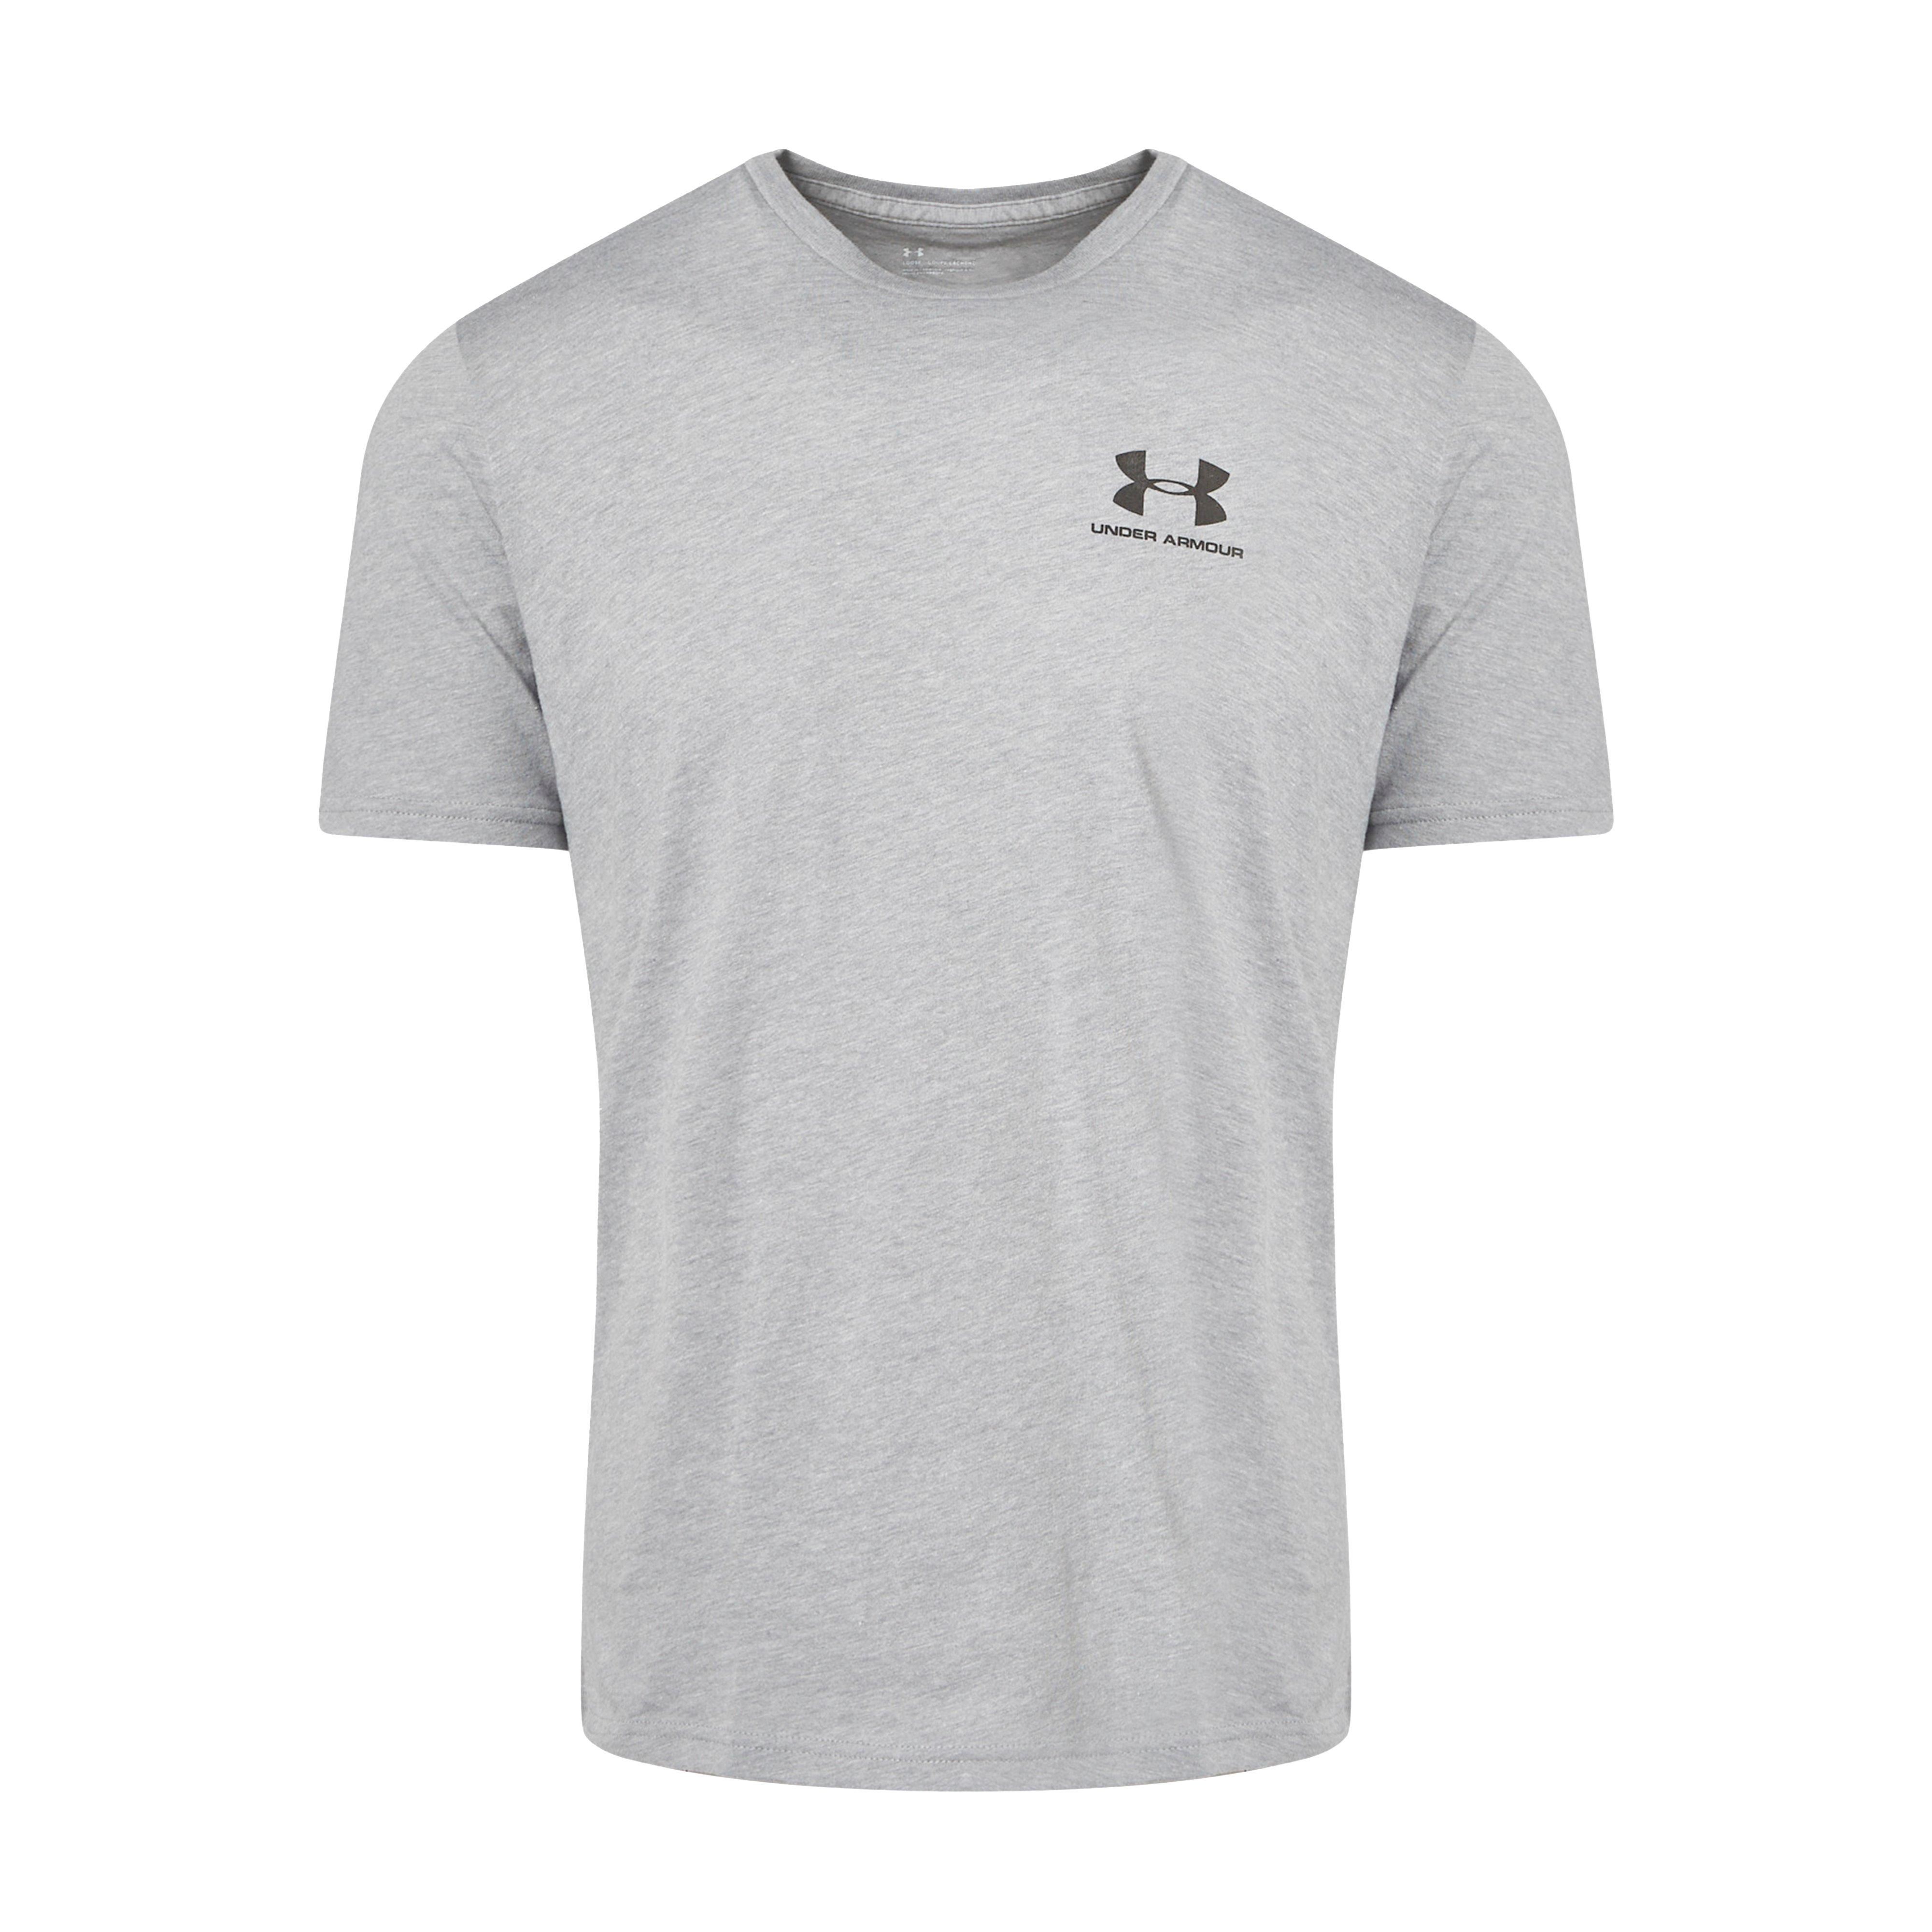 Under Armour Under Armour Mens Sportstyle T-Shirt, Grey